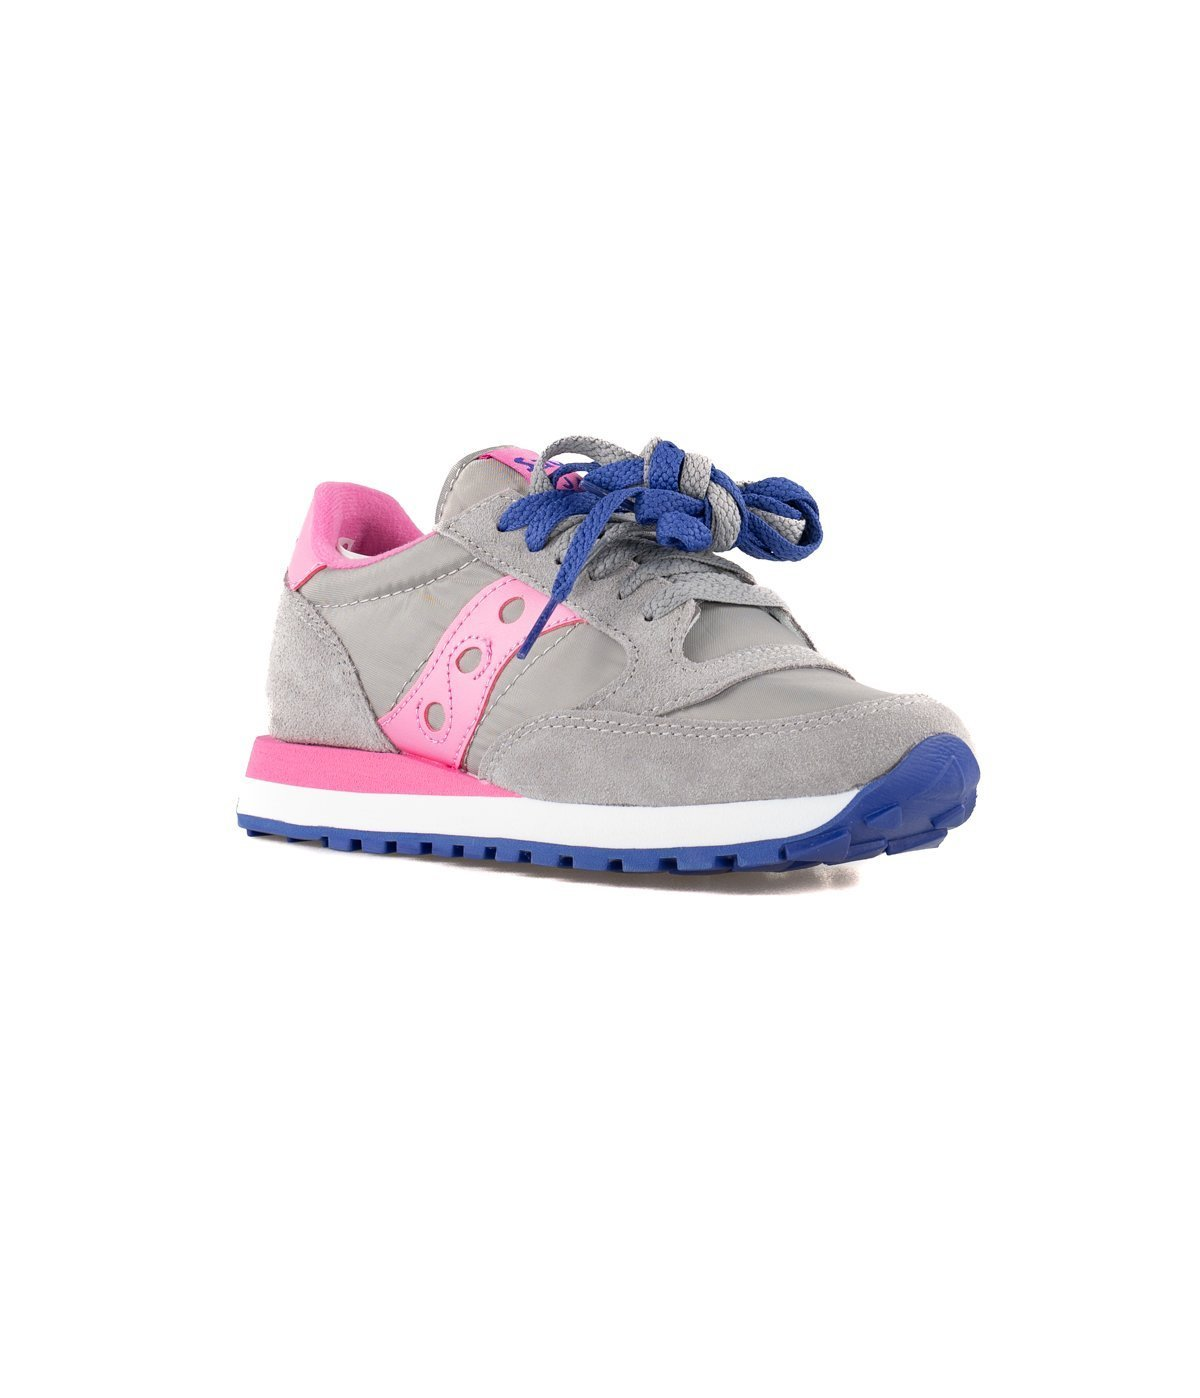 new style 1f2f0 76392 SNEAKERS DONNA SAUCONY JAZZ ORIGINAL GREY/PINK GRIS/ROSE S1044 463